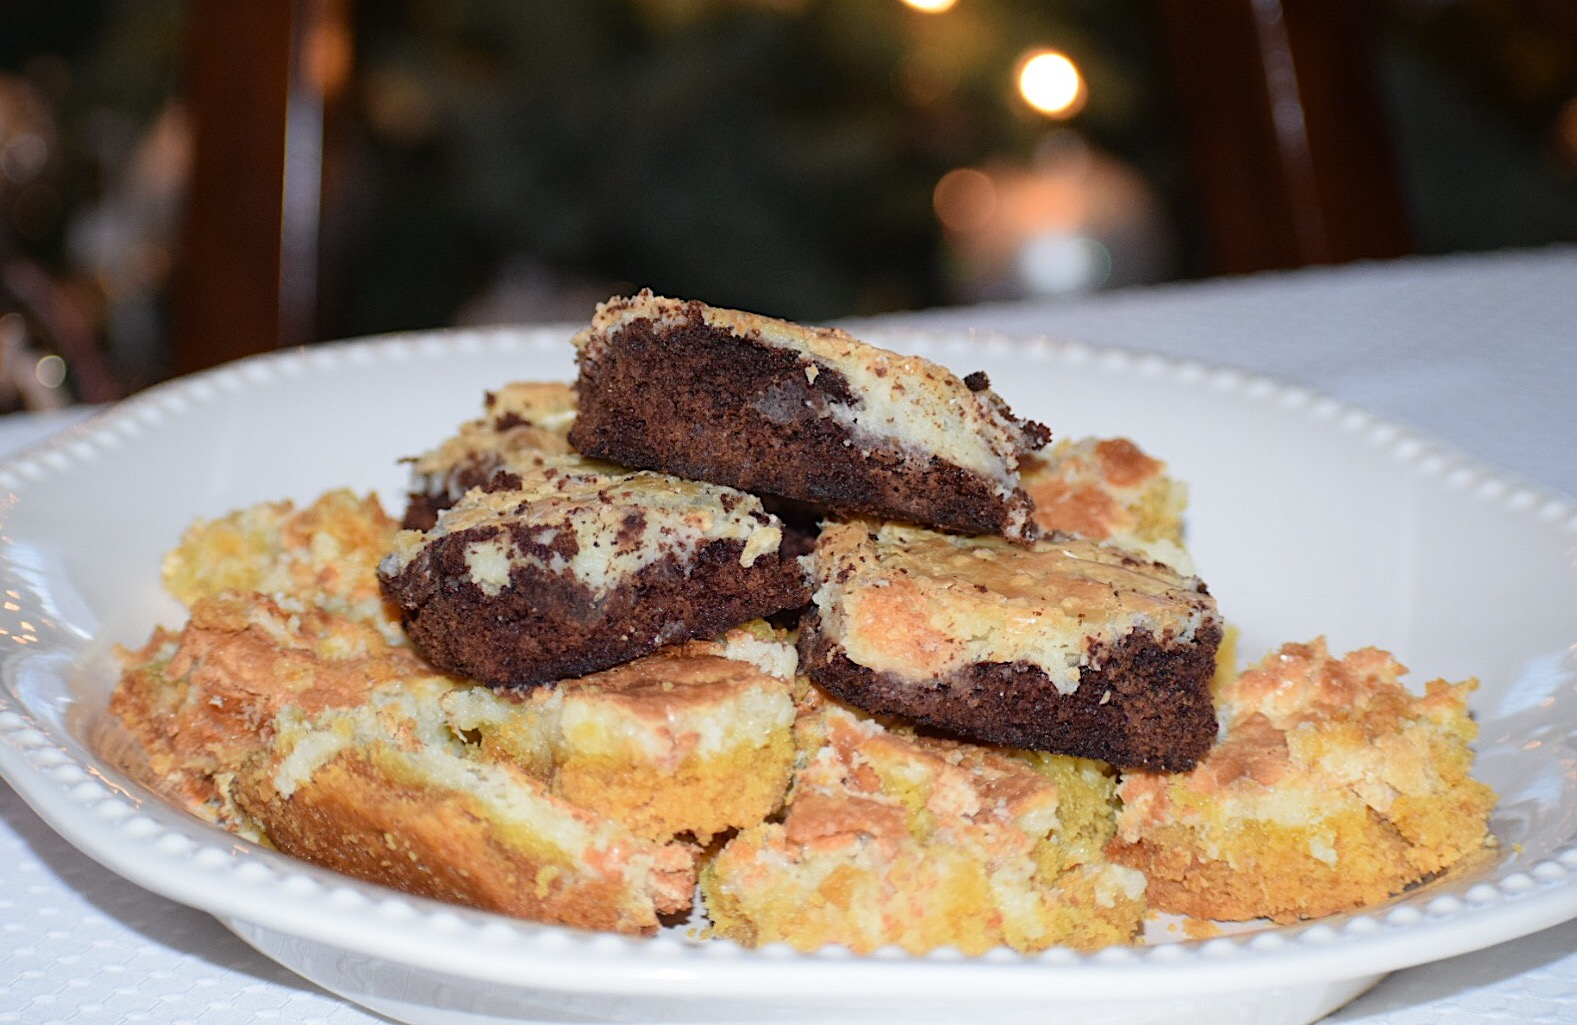 These Neiman Marcus chocolate brownies are delicious and rich with this unique crusty cream cheese topping